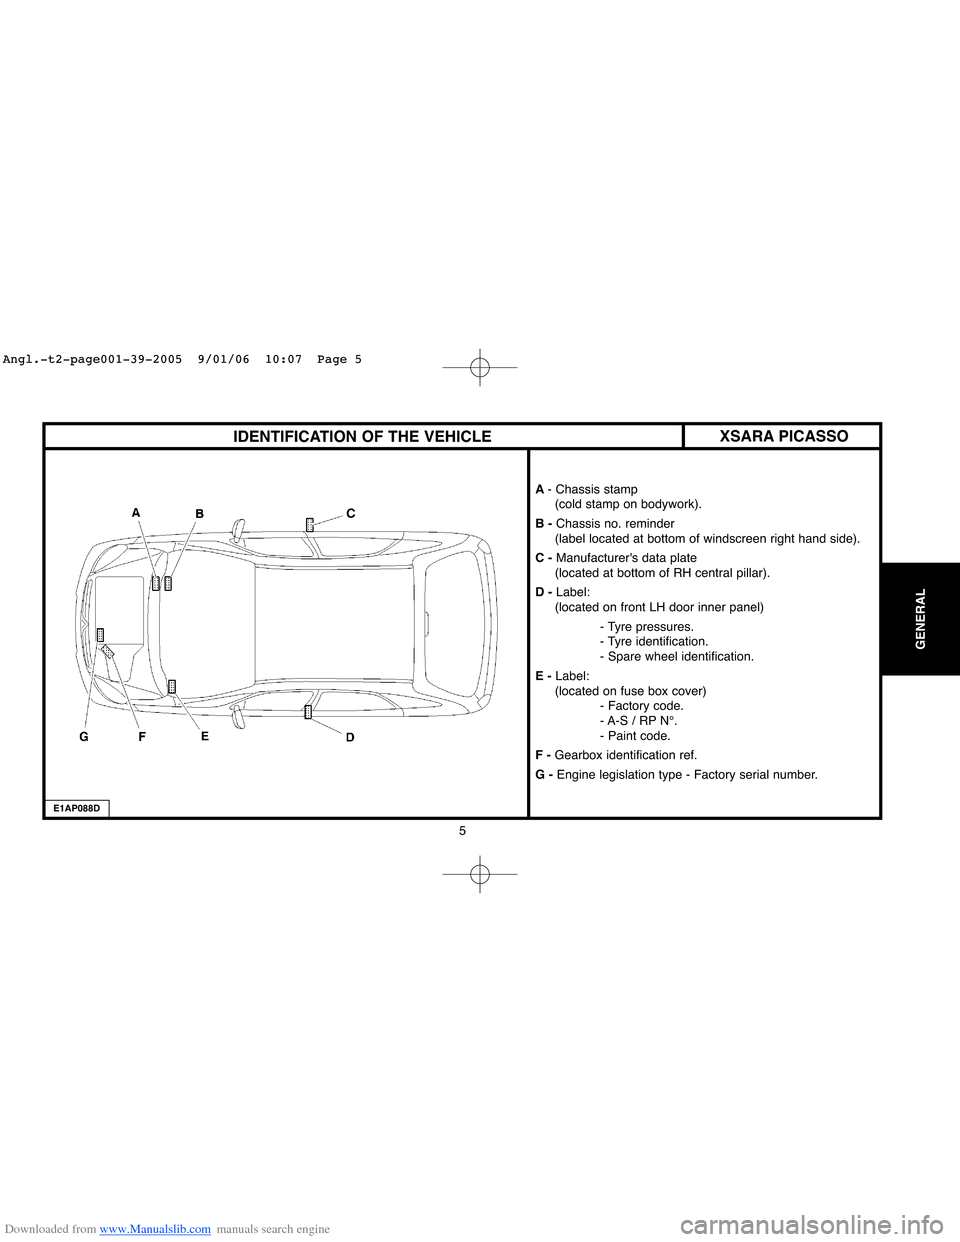 medium resolution of citroen berlingo 1 9d fuse box diagram wiring library citroen berlingo 1 9d fuse box diagram